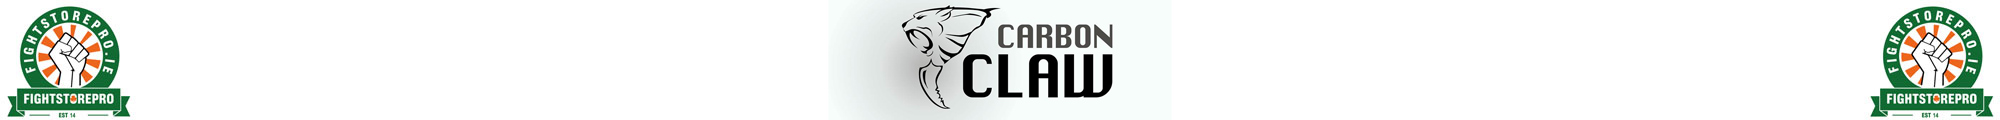 Carbon Claw - Fightstore Pro Ireland